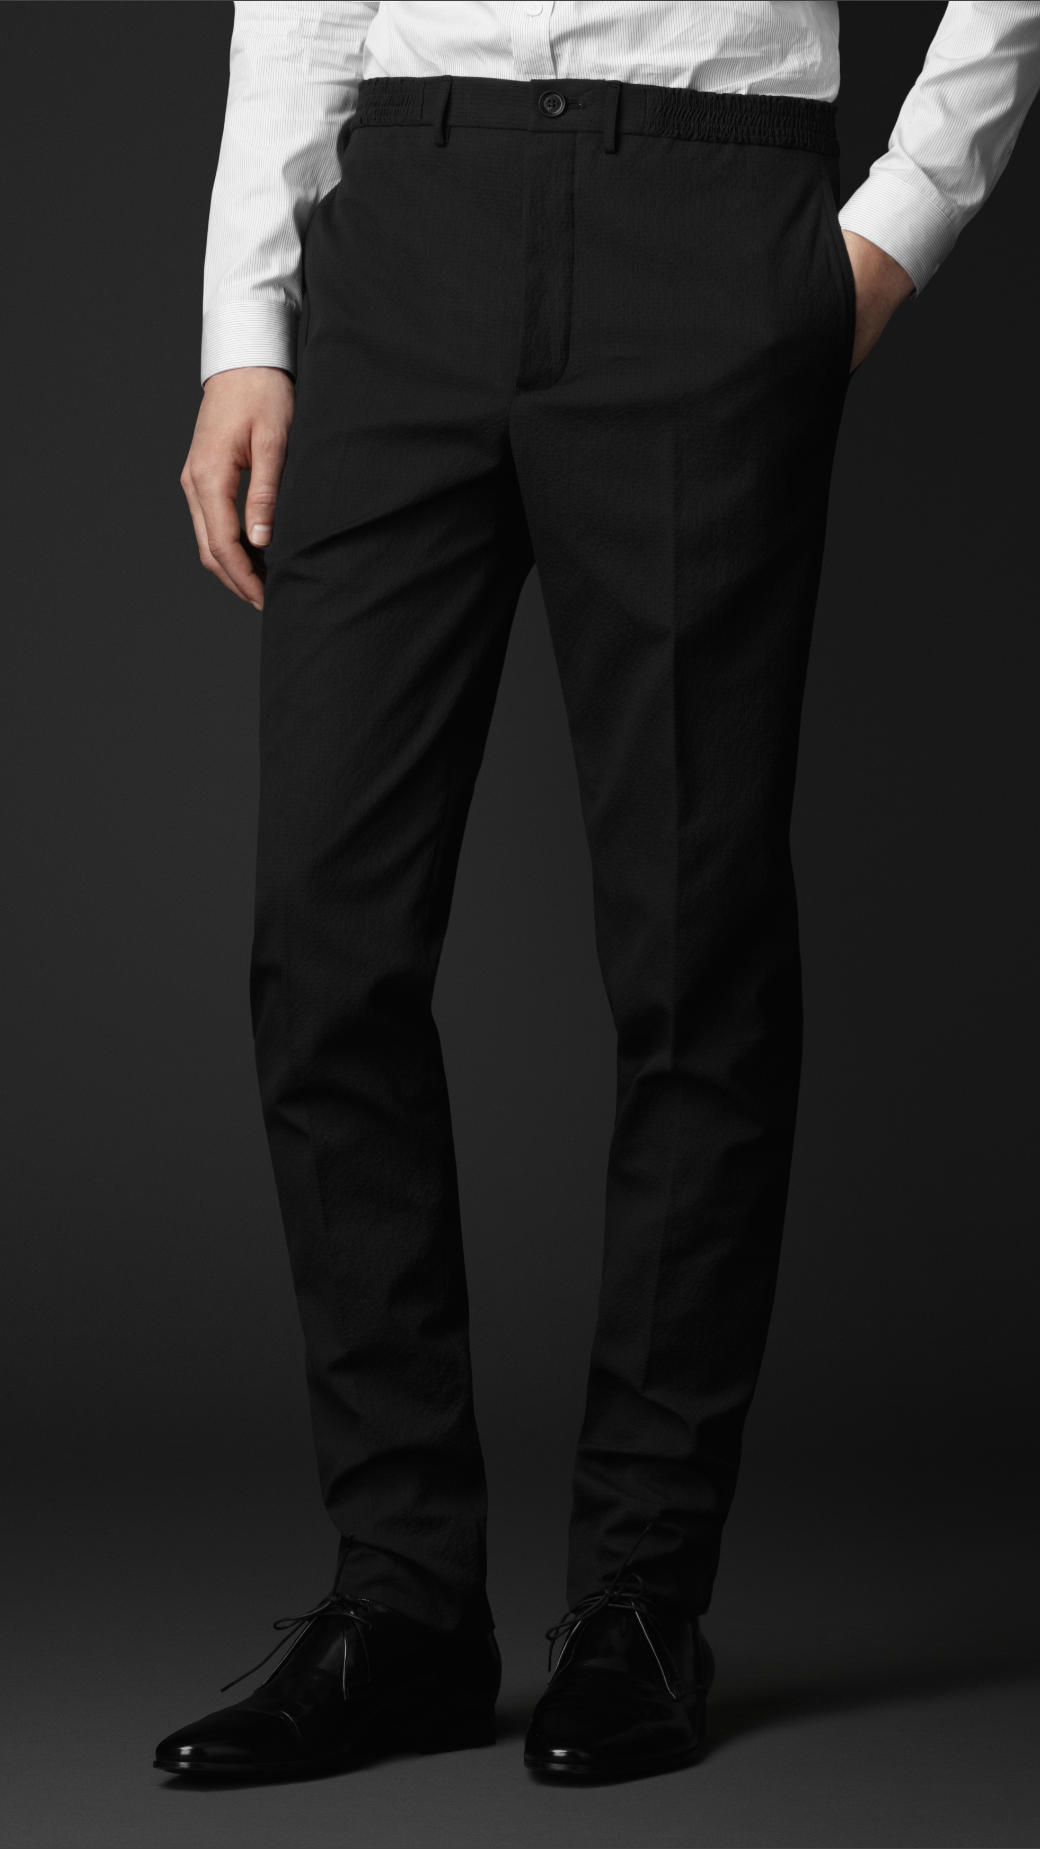 Burberry Cotton Slim Fit Seersucker Trousers in Blue for Men